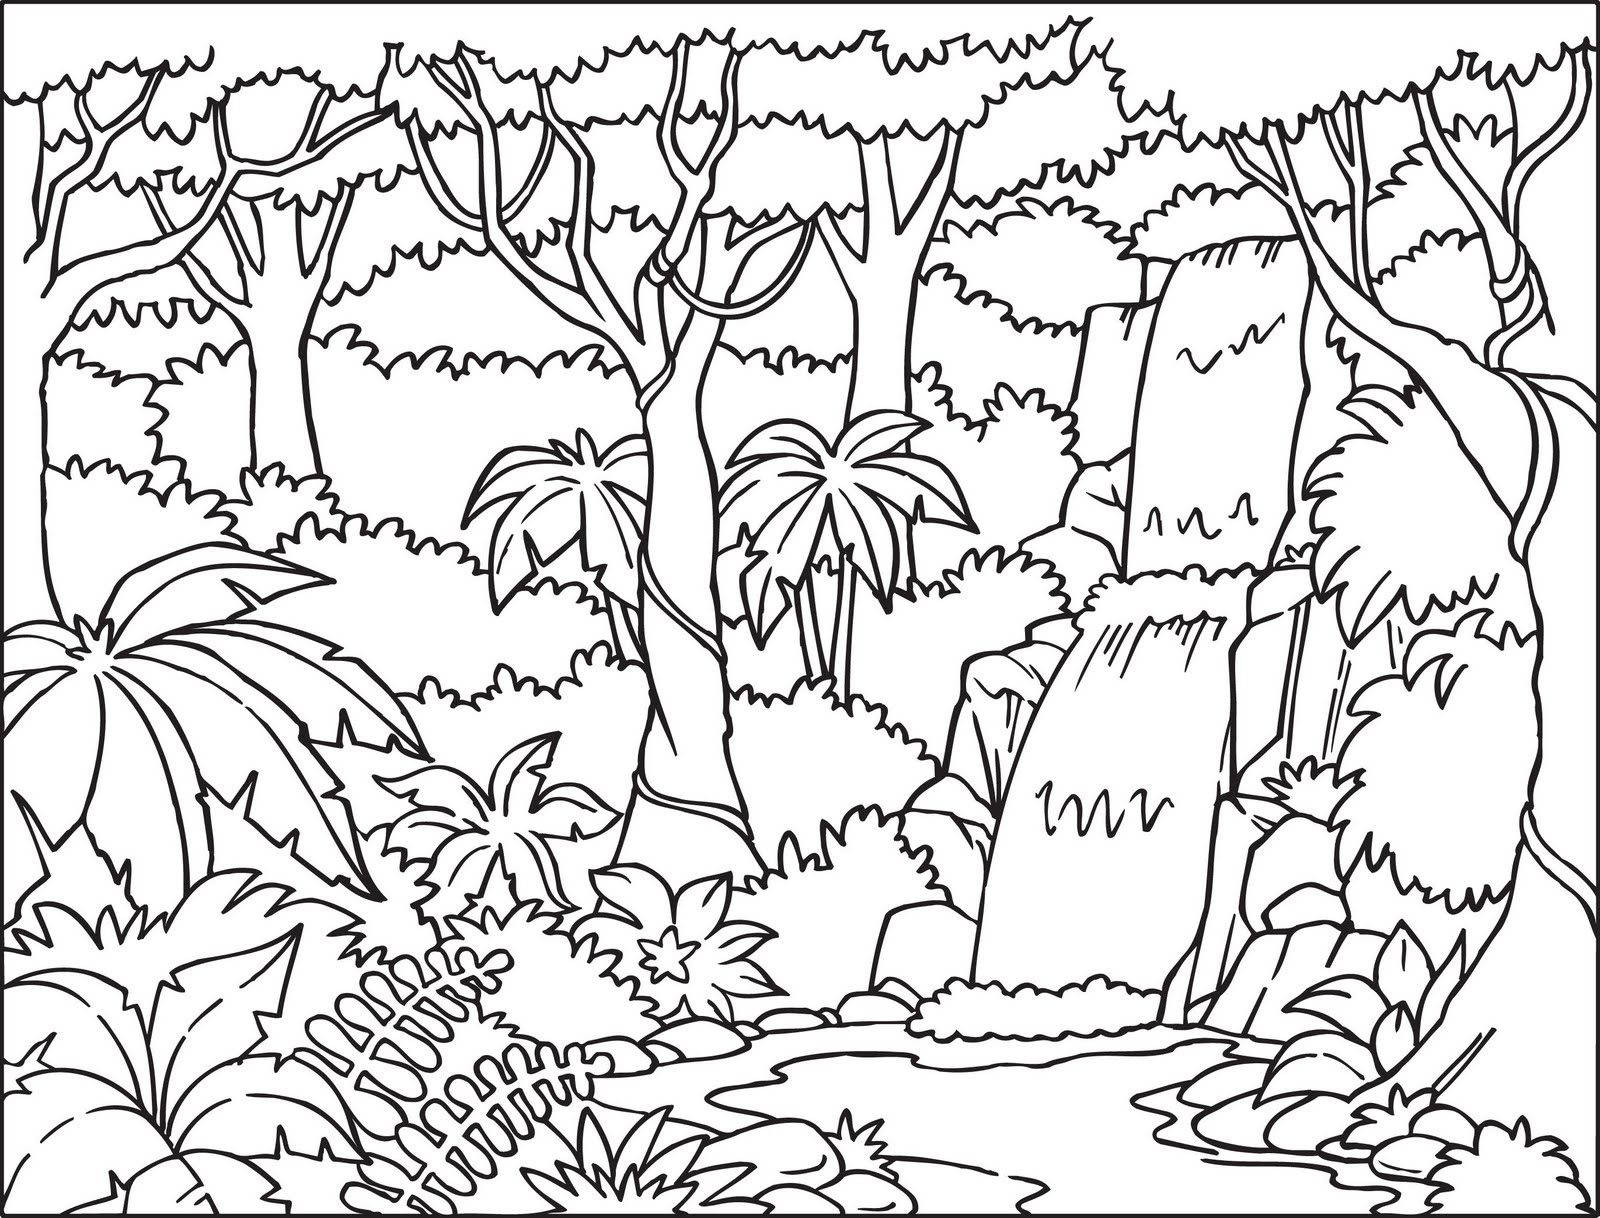 Drawn rainforest rainforest tree Print Mandala Pages to Free